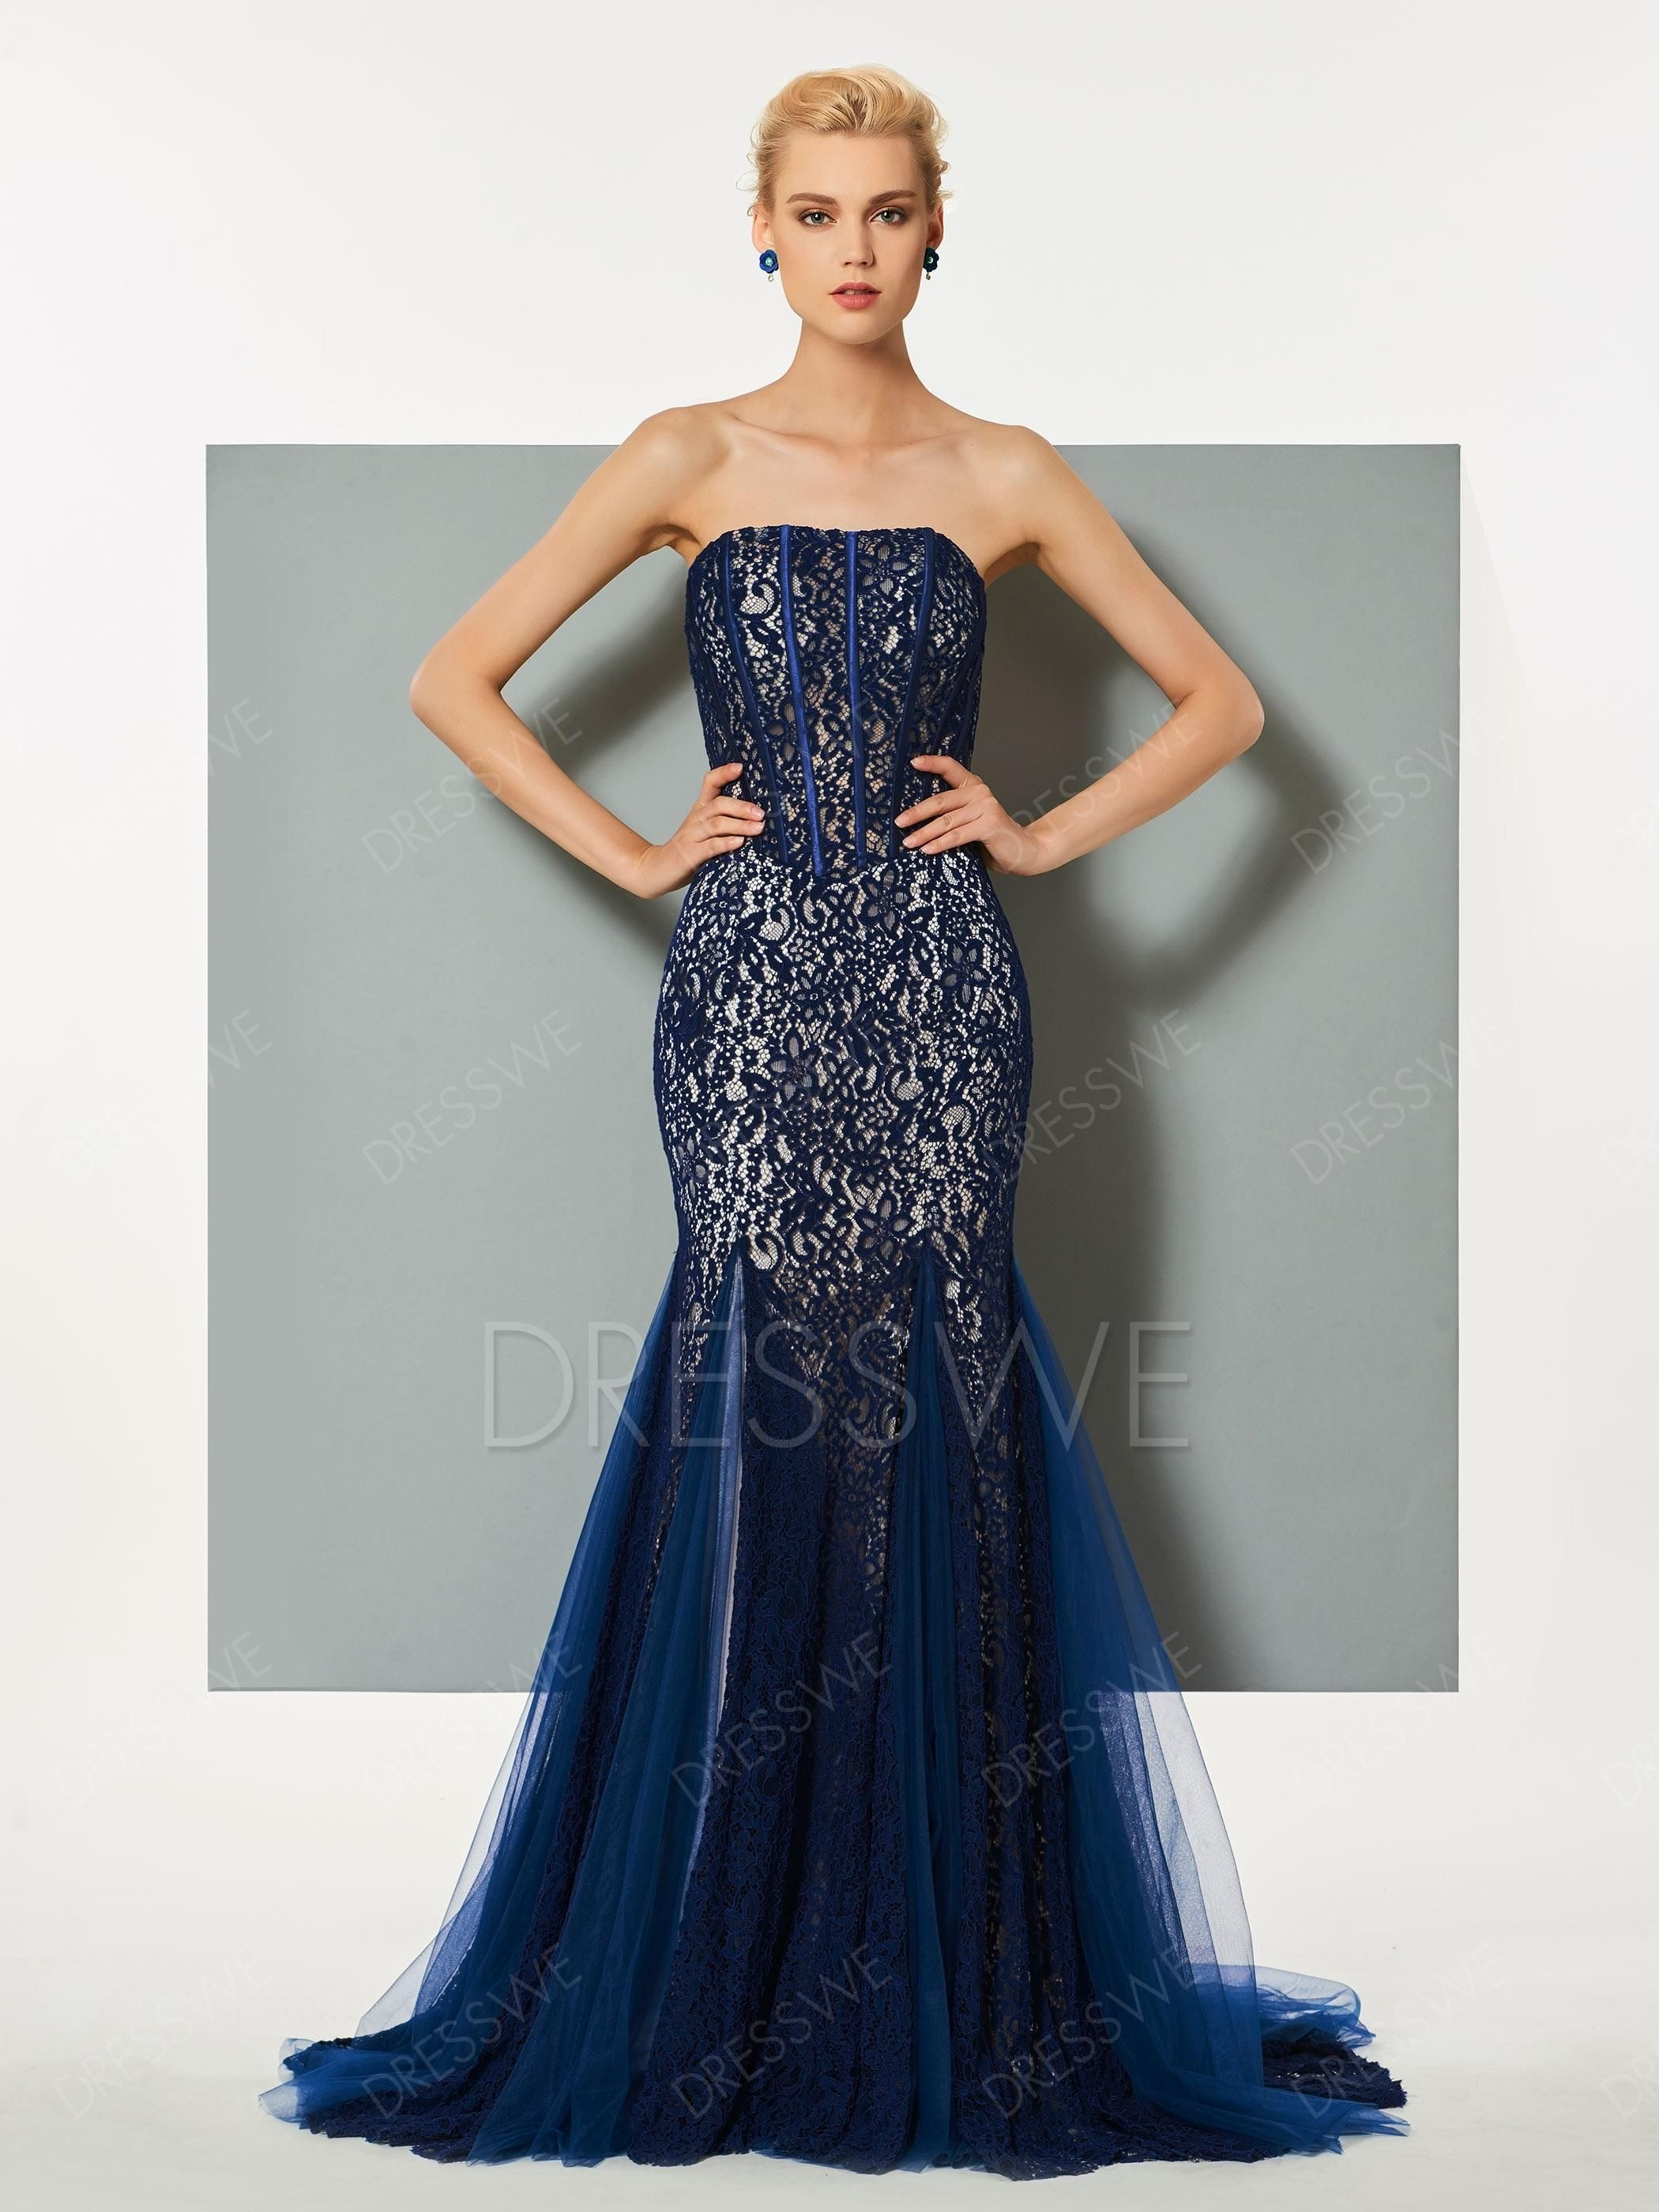 Dresswe dresswe strapless lace mermaid evening dress with sweep